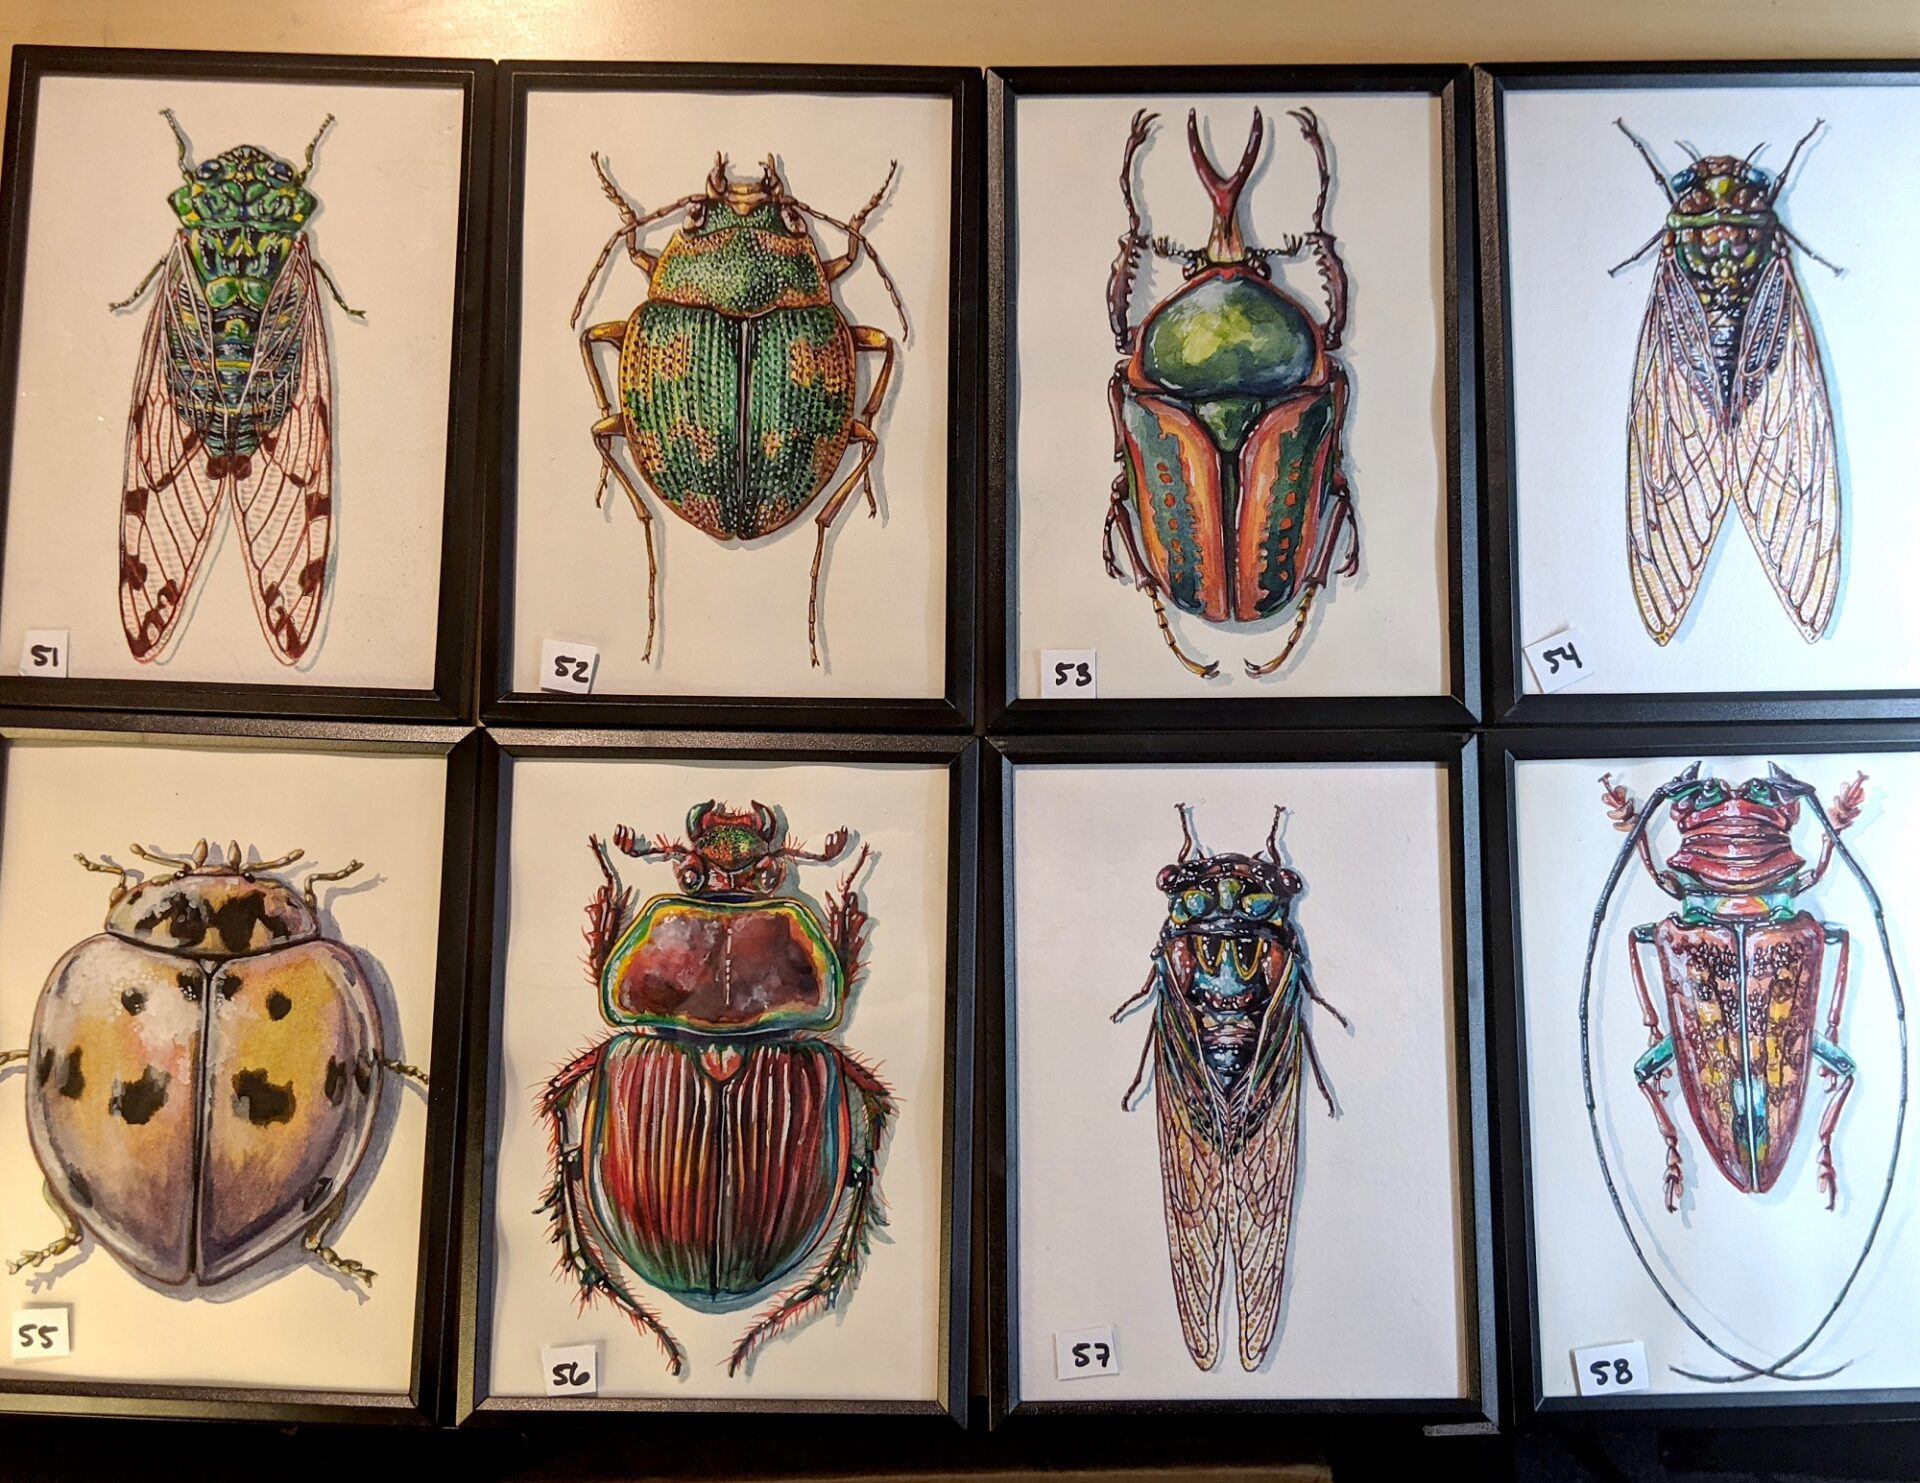 Small Insects 51 – 58 By Martha Iserman (Petals And Wings Exhibition)